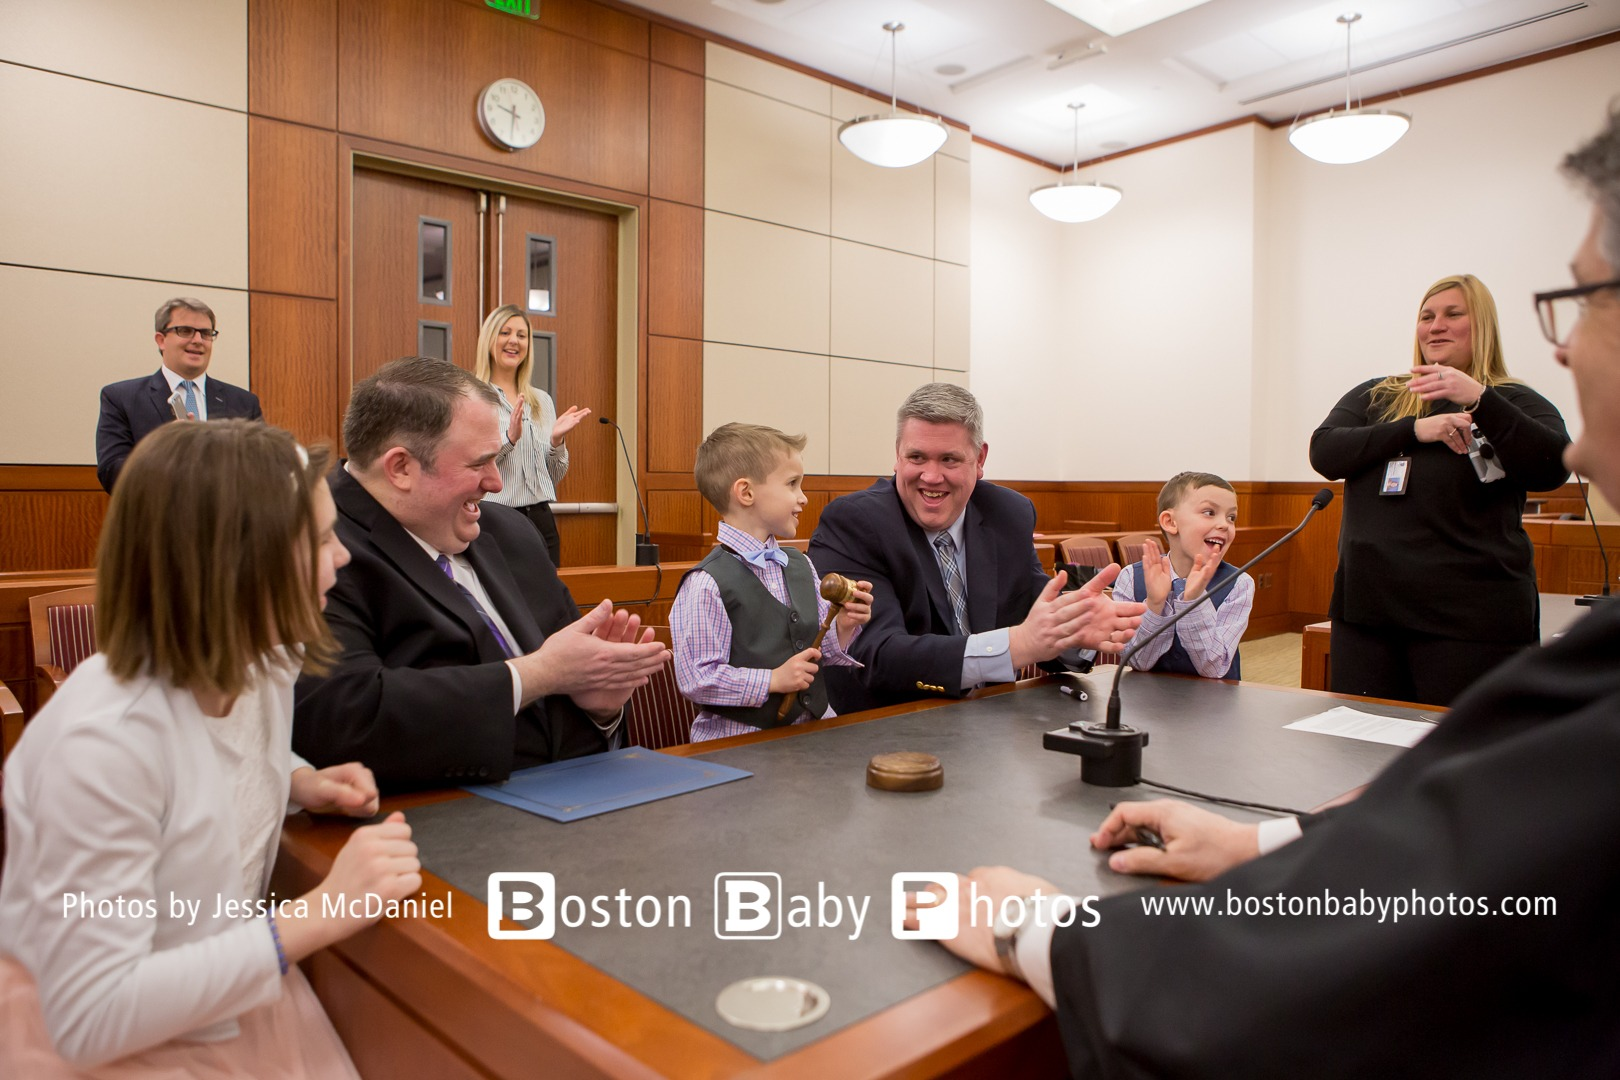 Worcester County Courthouse: A wonderful adoption ceremony this morning